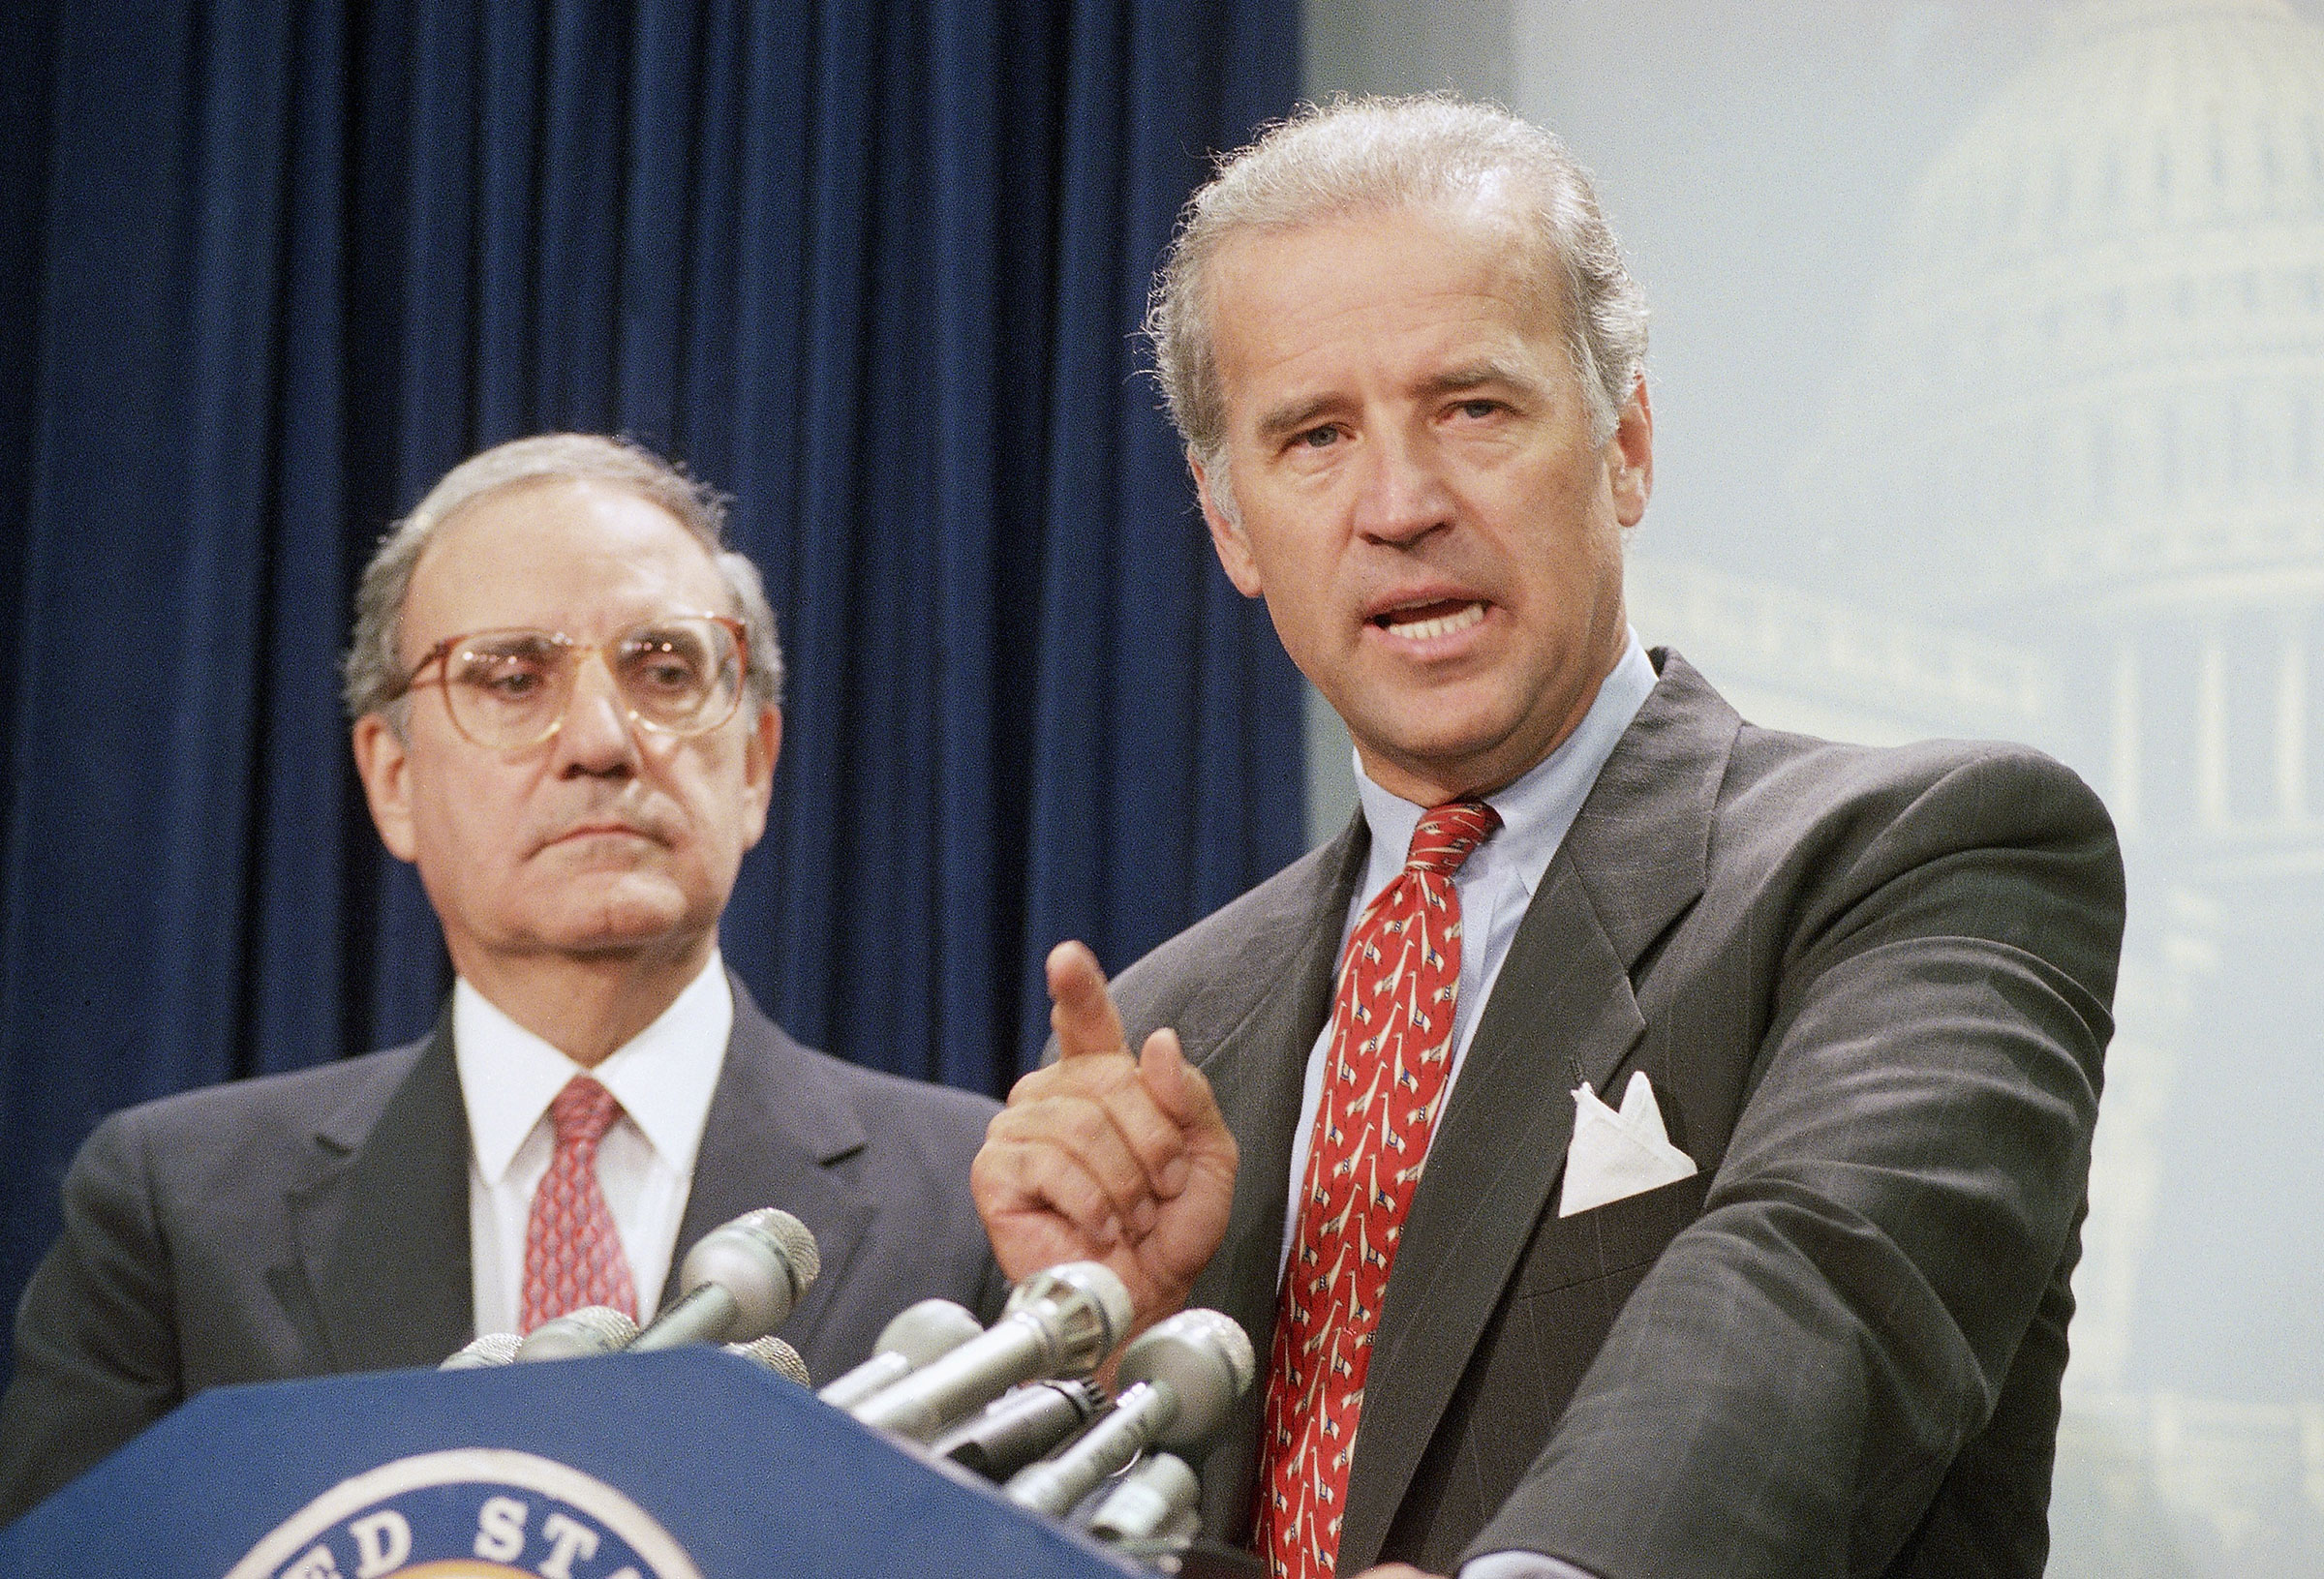 Biden helps write the controversial crime bill signed by President Clinton in 1994